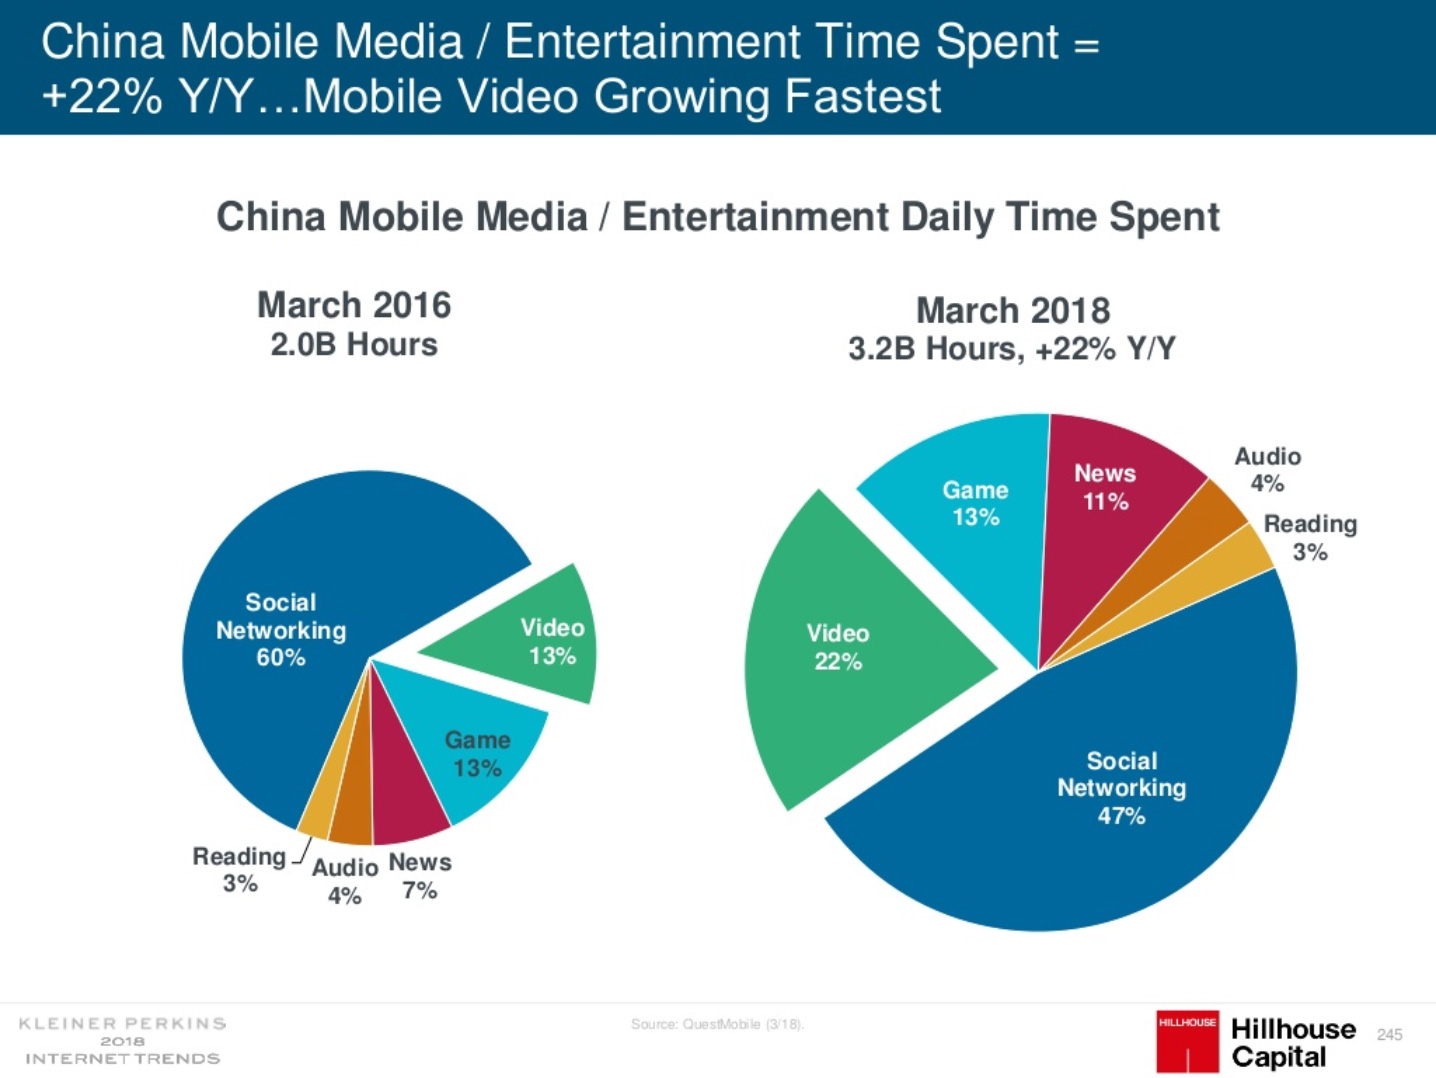 Entertainment Daily time spent in China